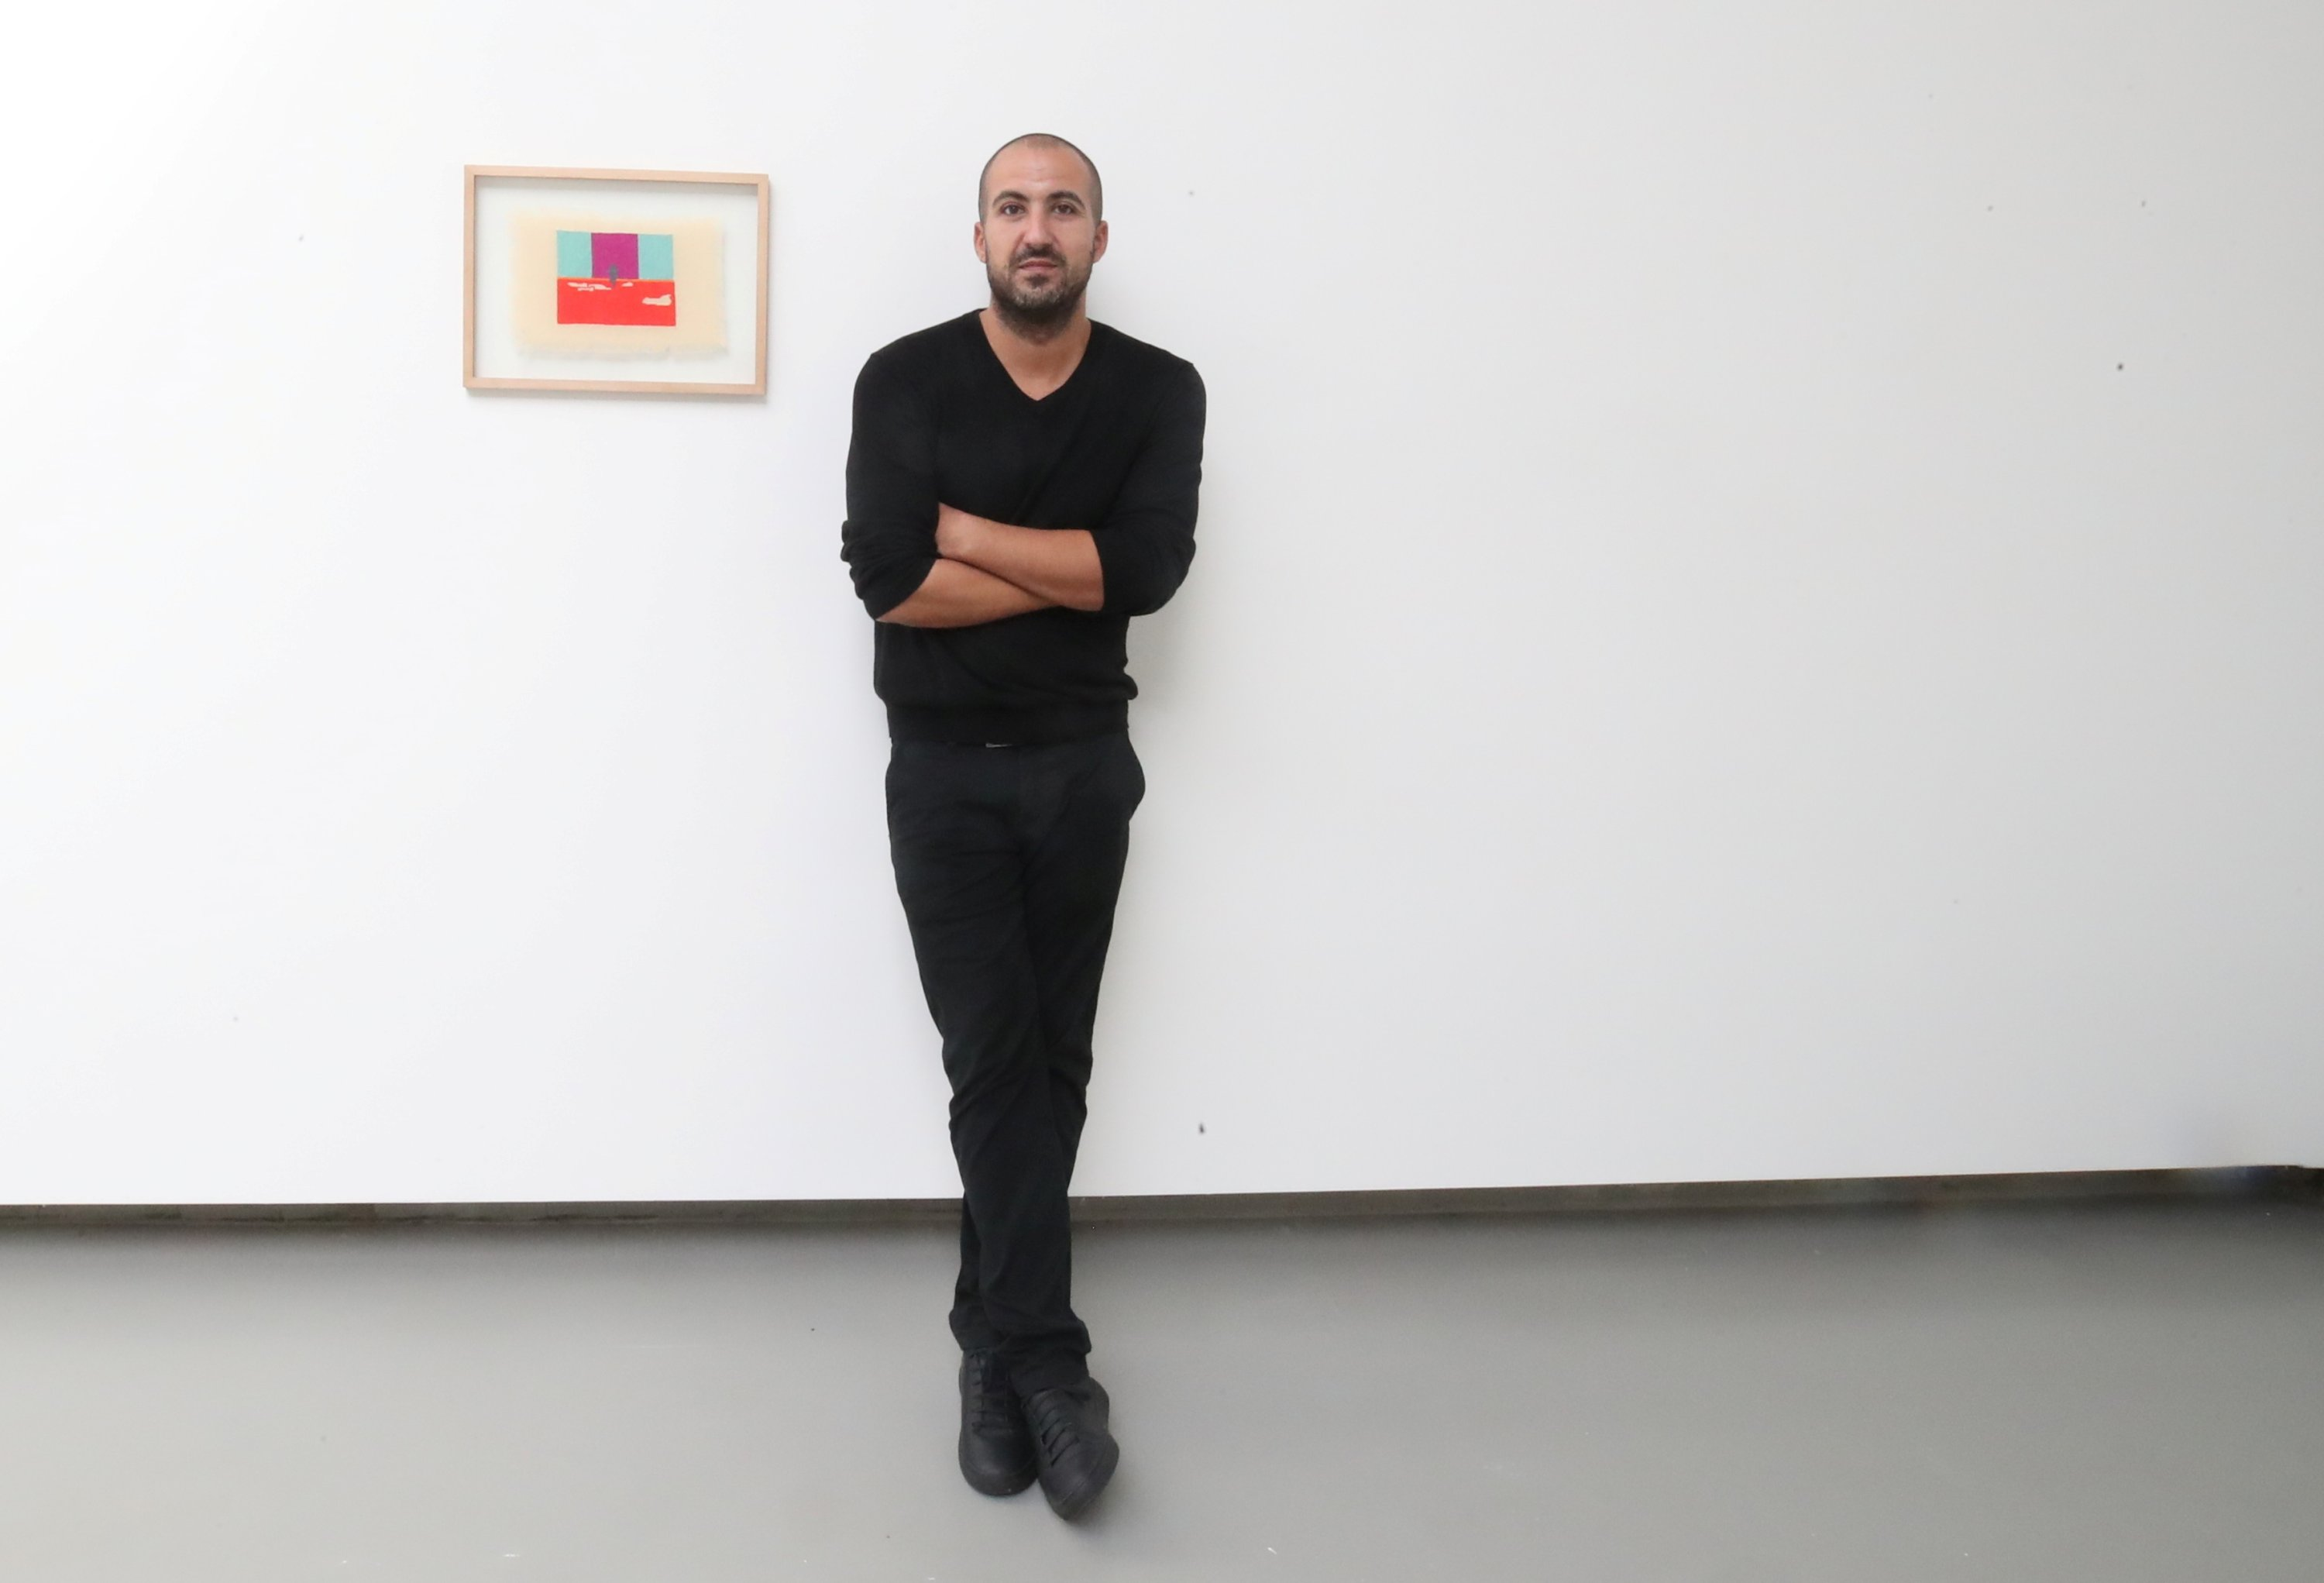 """Palestinian artist Majd Abdel Hamid poses for Reuters during his exhibition """"A Stitch in Times"""" in Brussels, Belgium Oct. 5, 2021. (Reuters Photo)"""